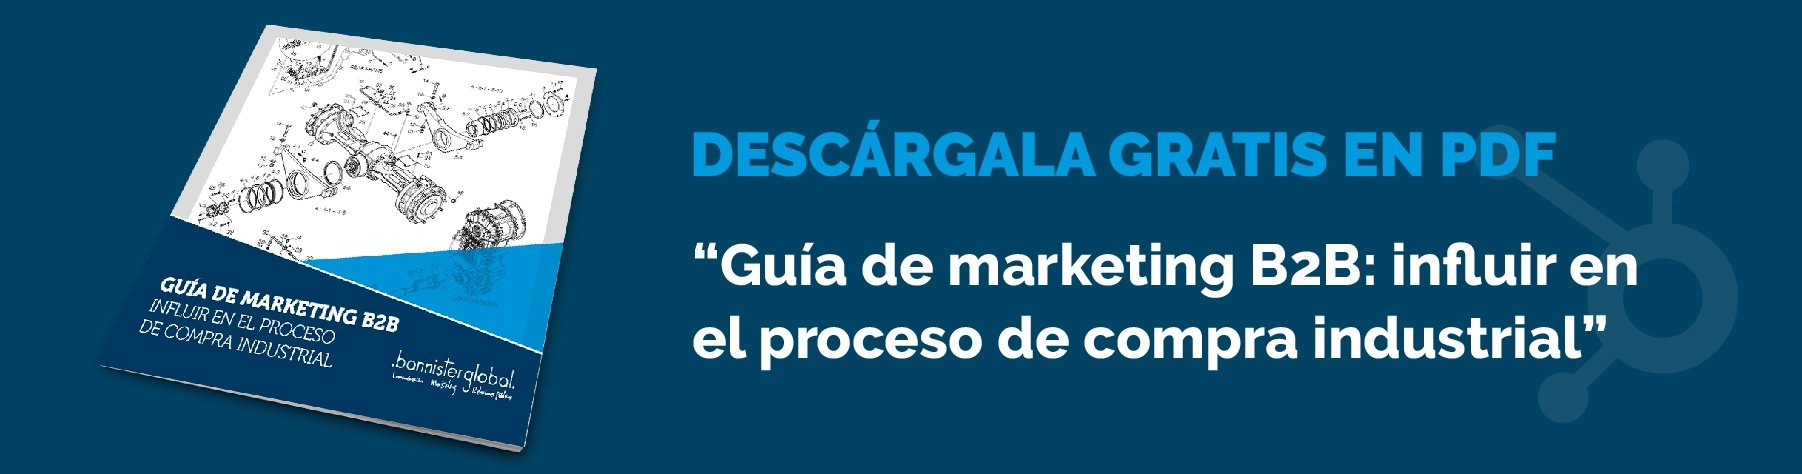 Guía de marketing B2B